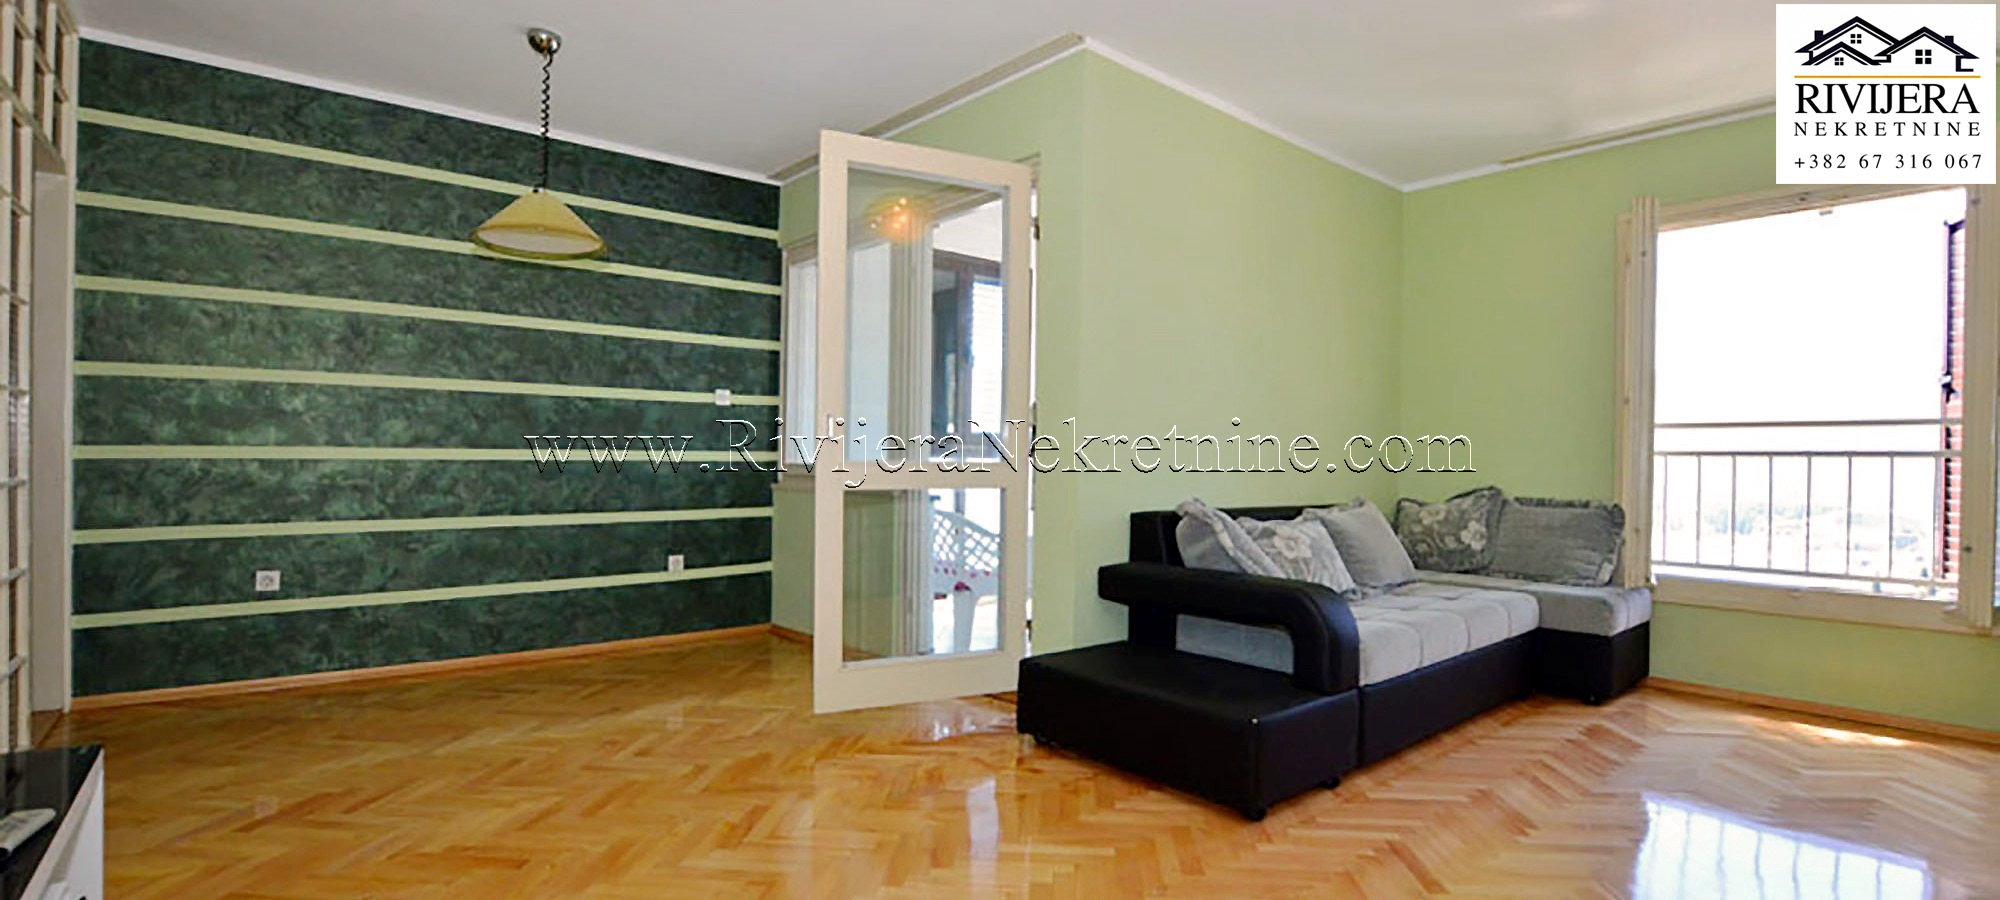 Spacious three bedroom apartment with basement and garage Topla II